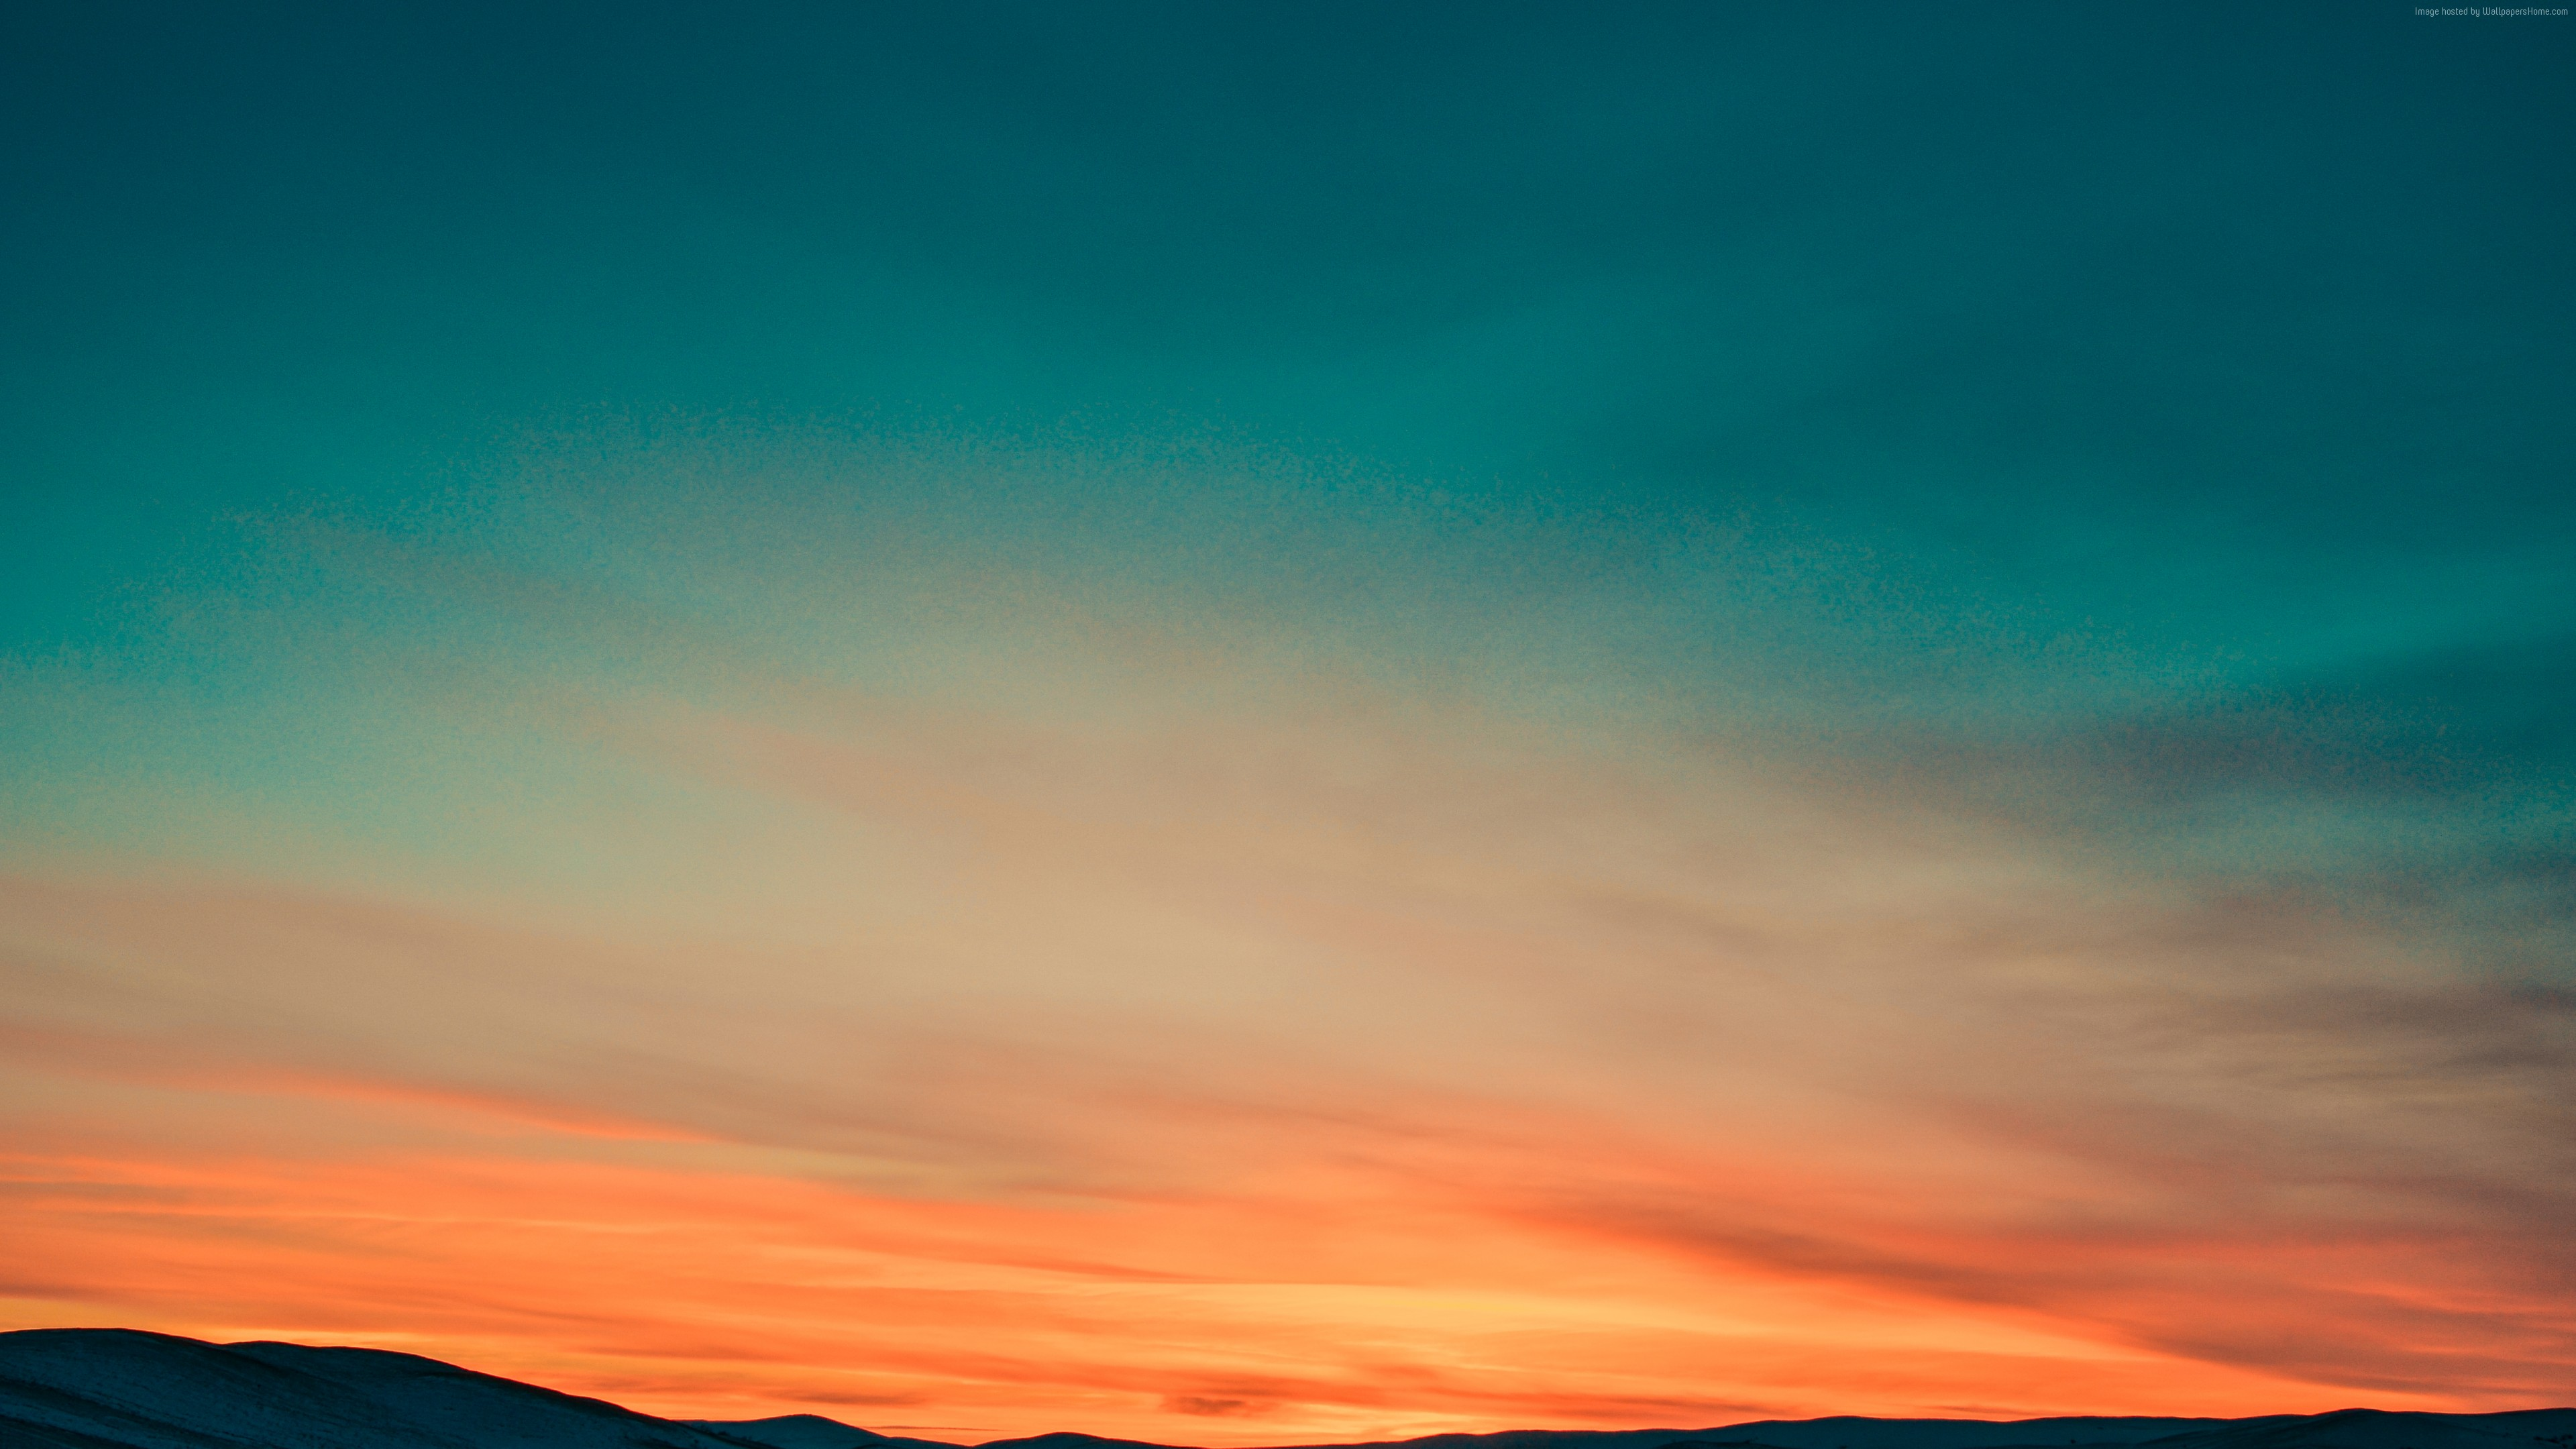 Wallpaper sunset, sky, mountains, 4k, Nature